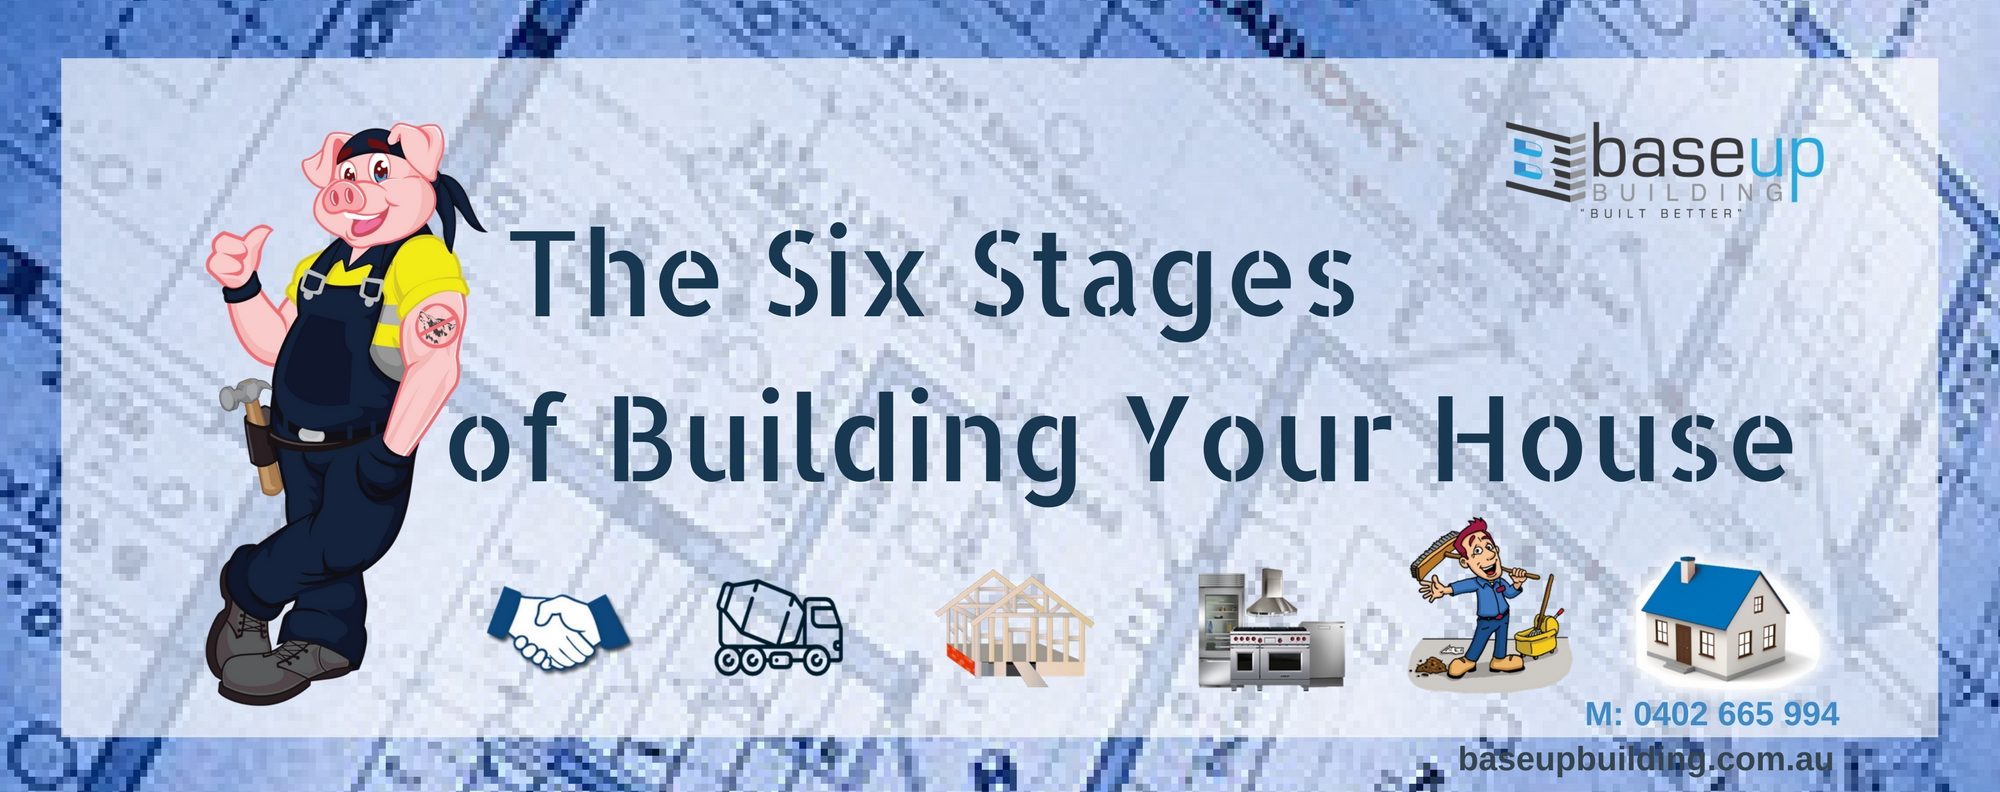 The Six Stages of Building a House